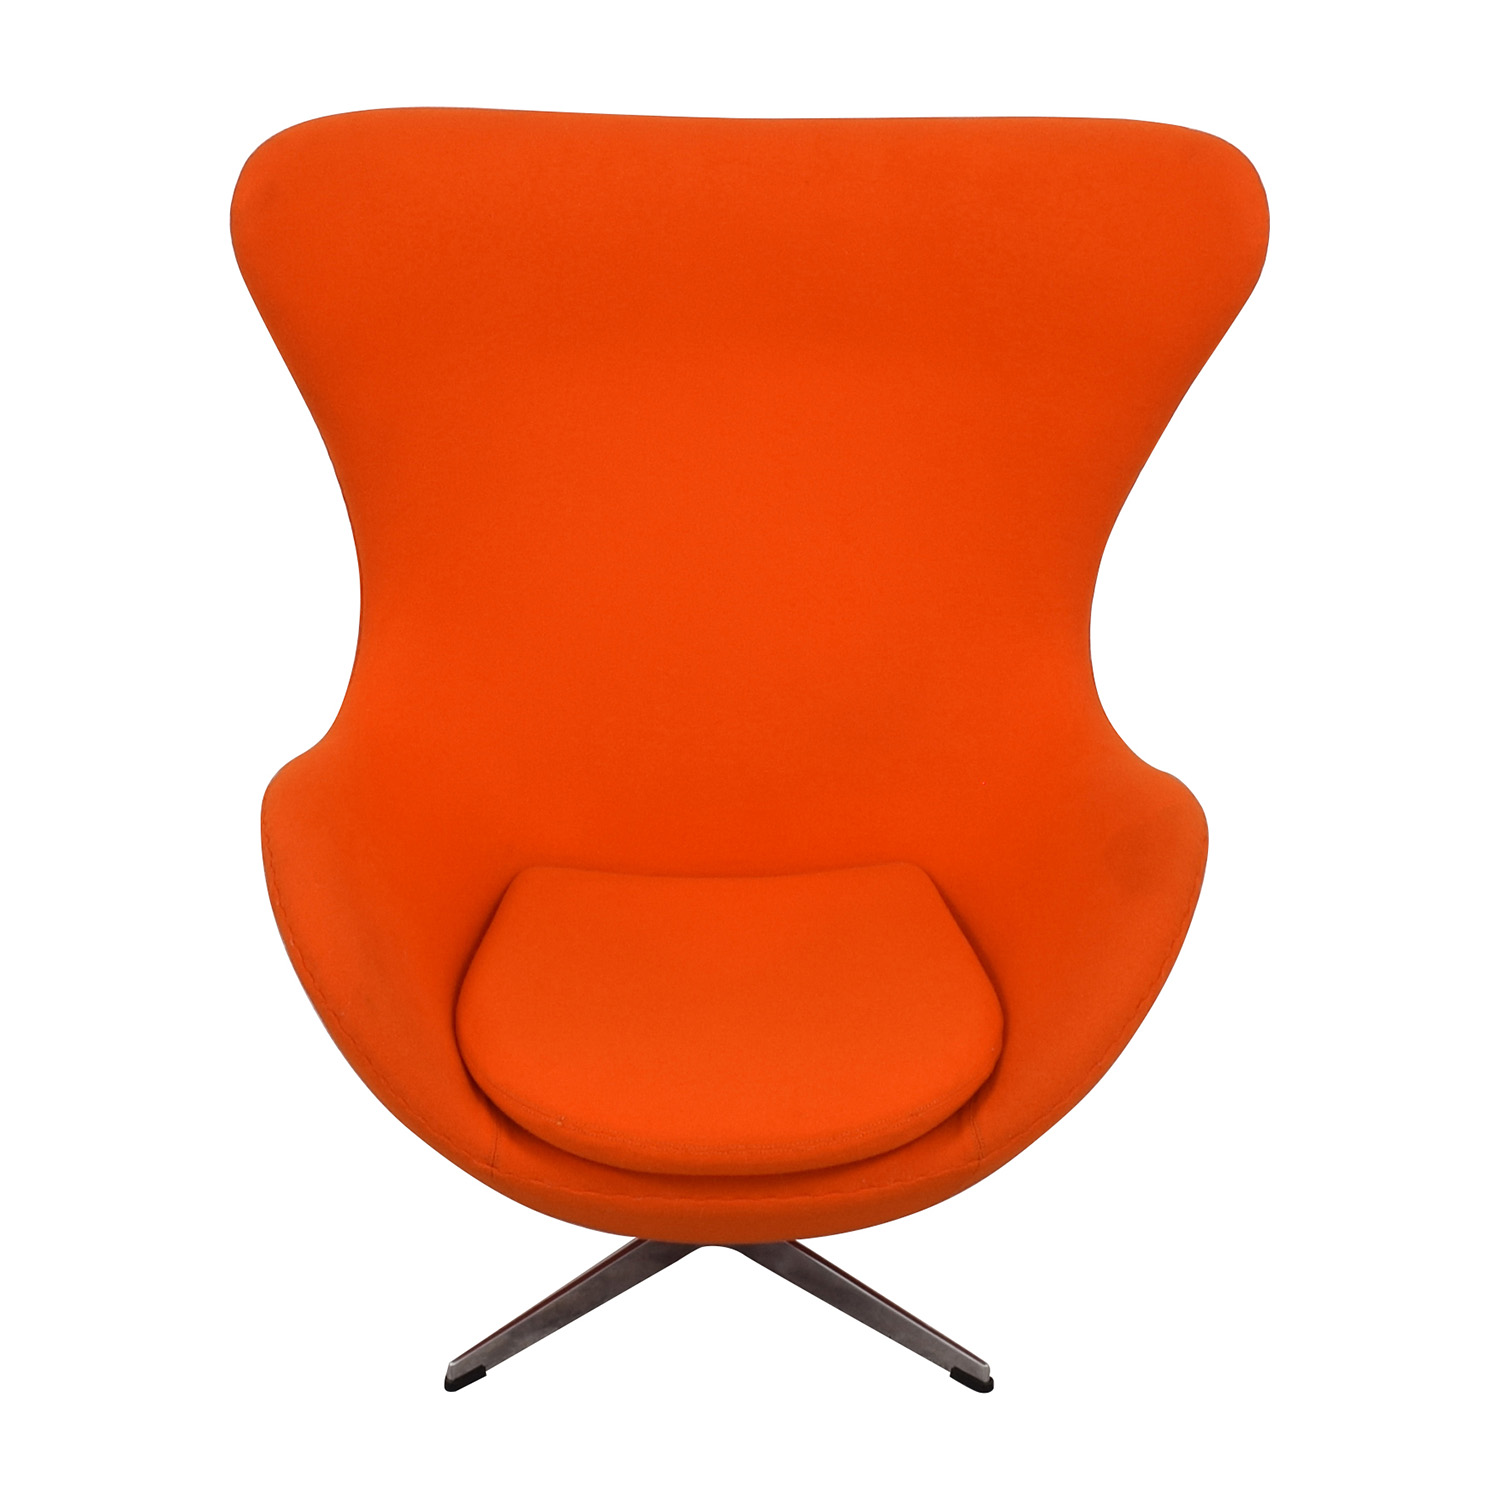 Buy Egg Chair 66 Off Inmod Inmod Jacobsen Orange Egg Chair Chairs